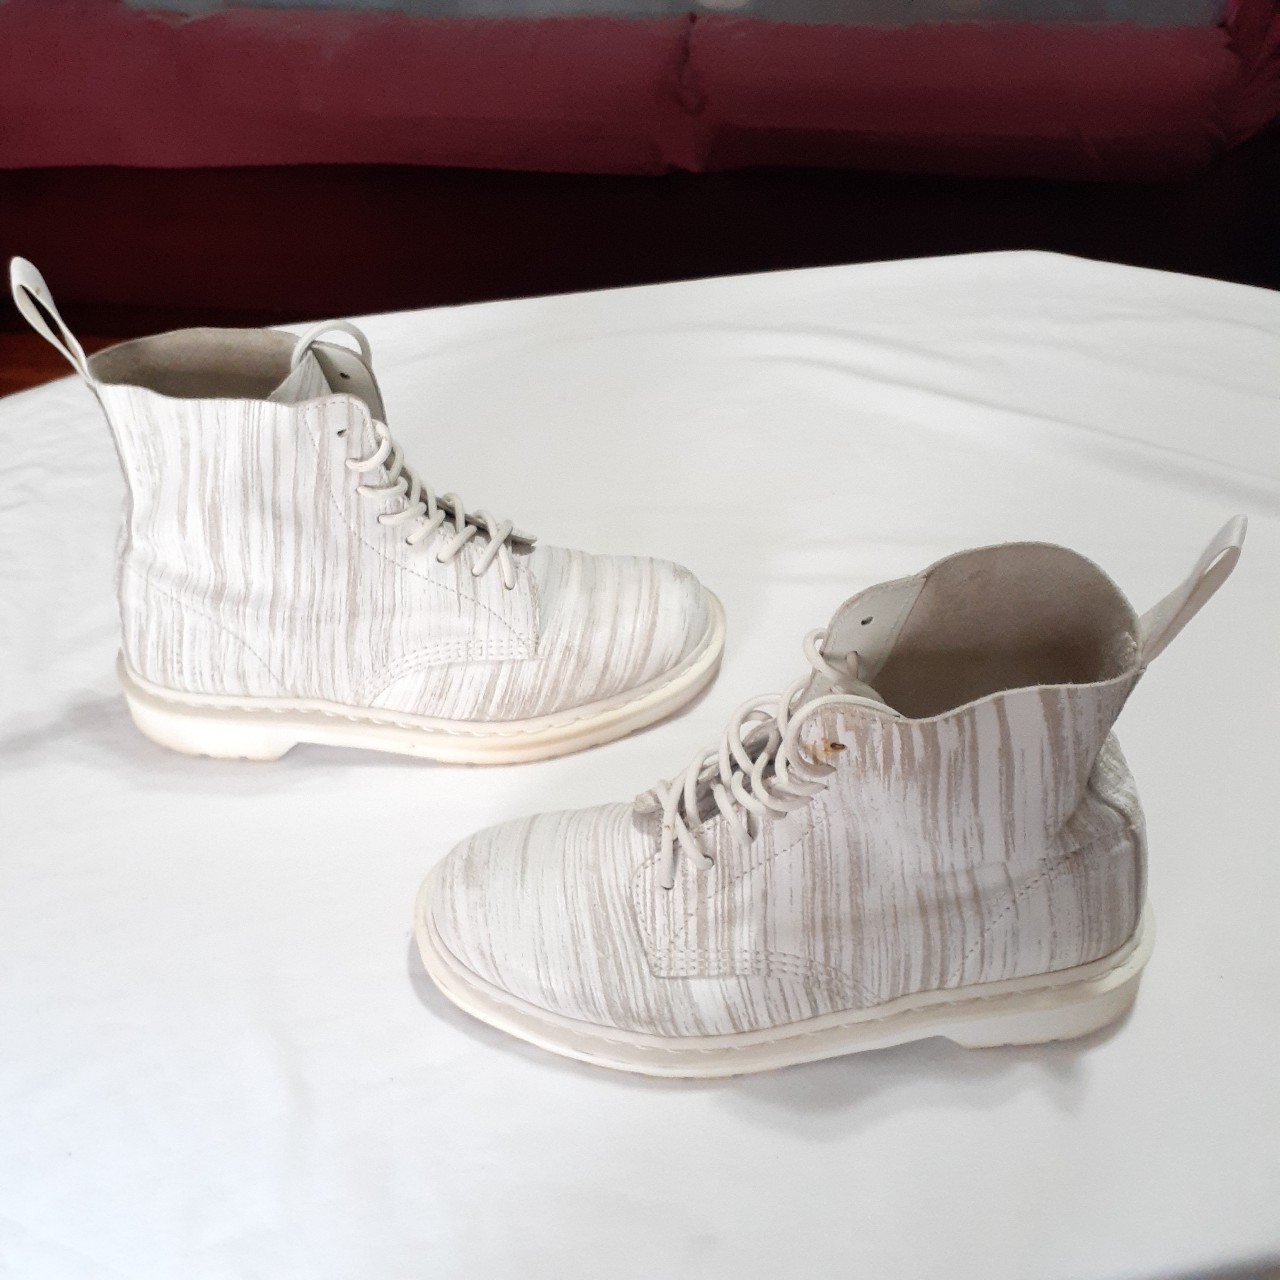 Product Image 1 - Dr Martens High Top White